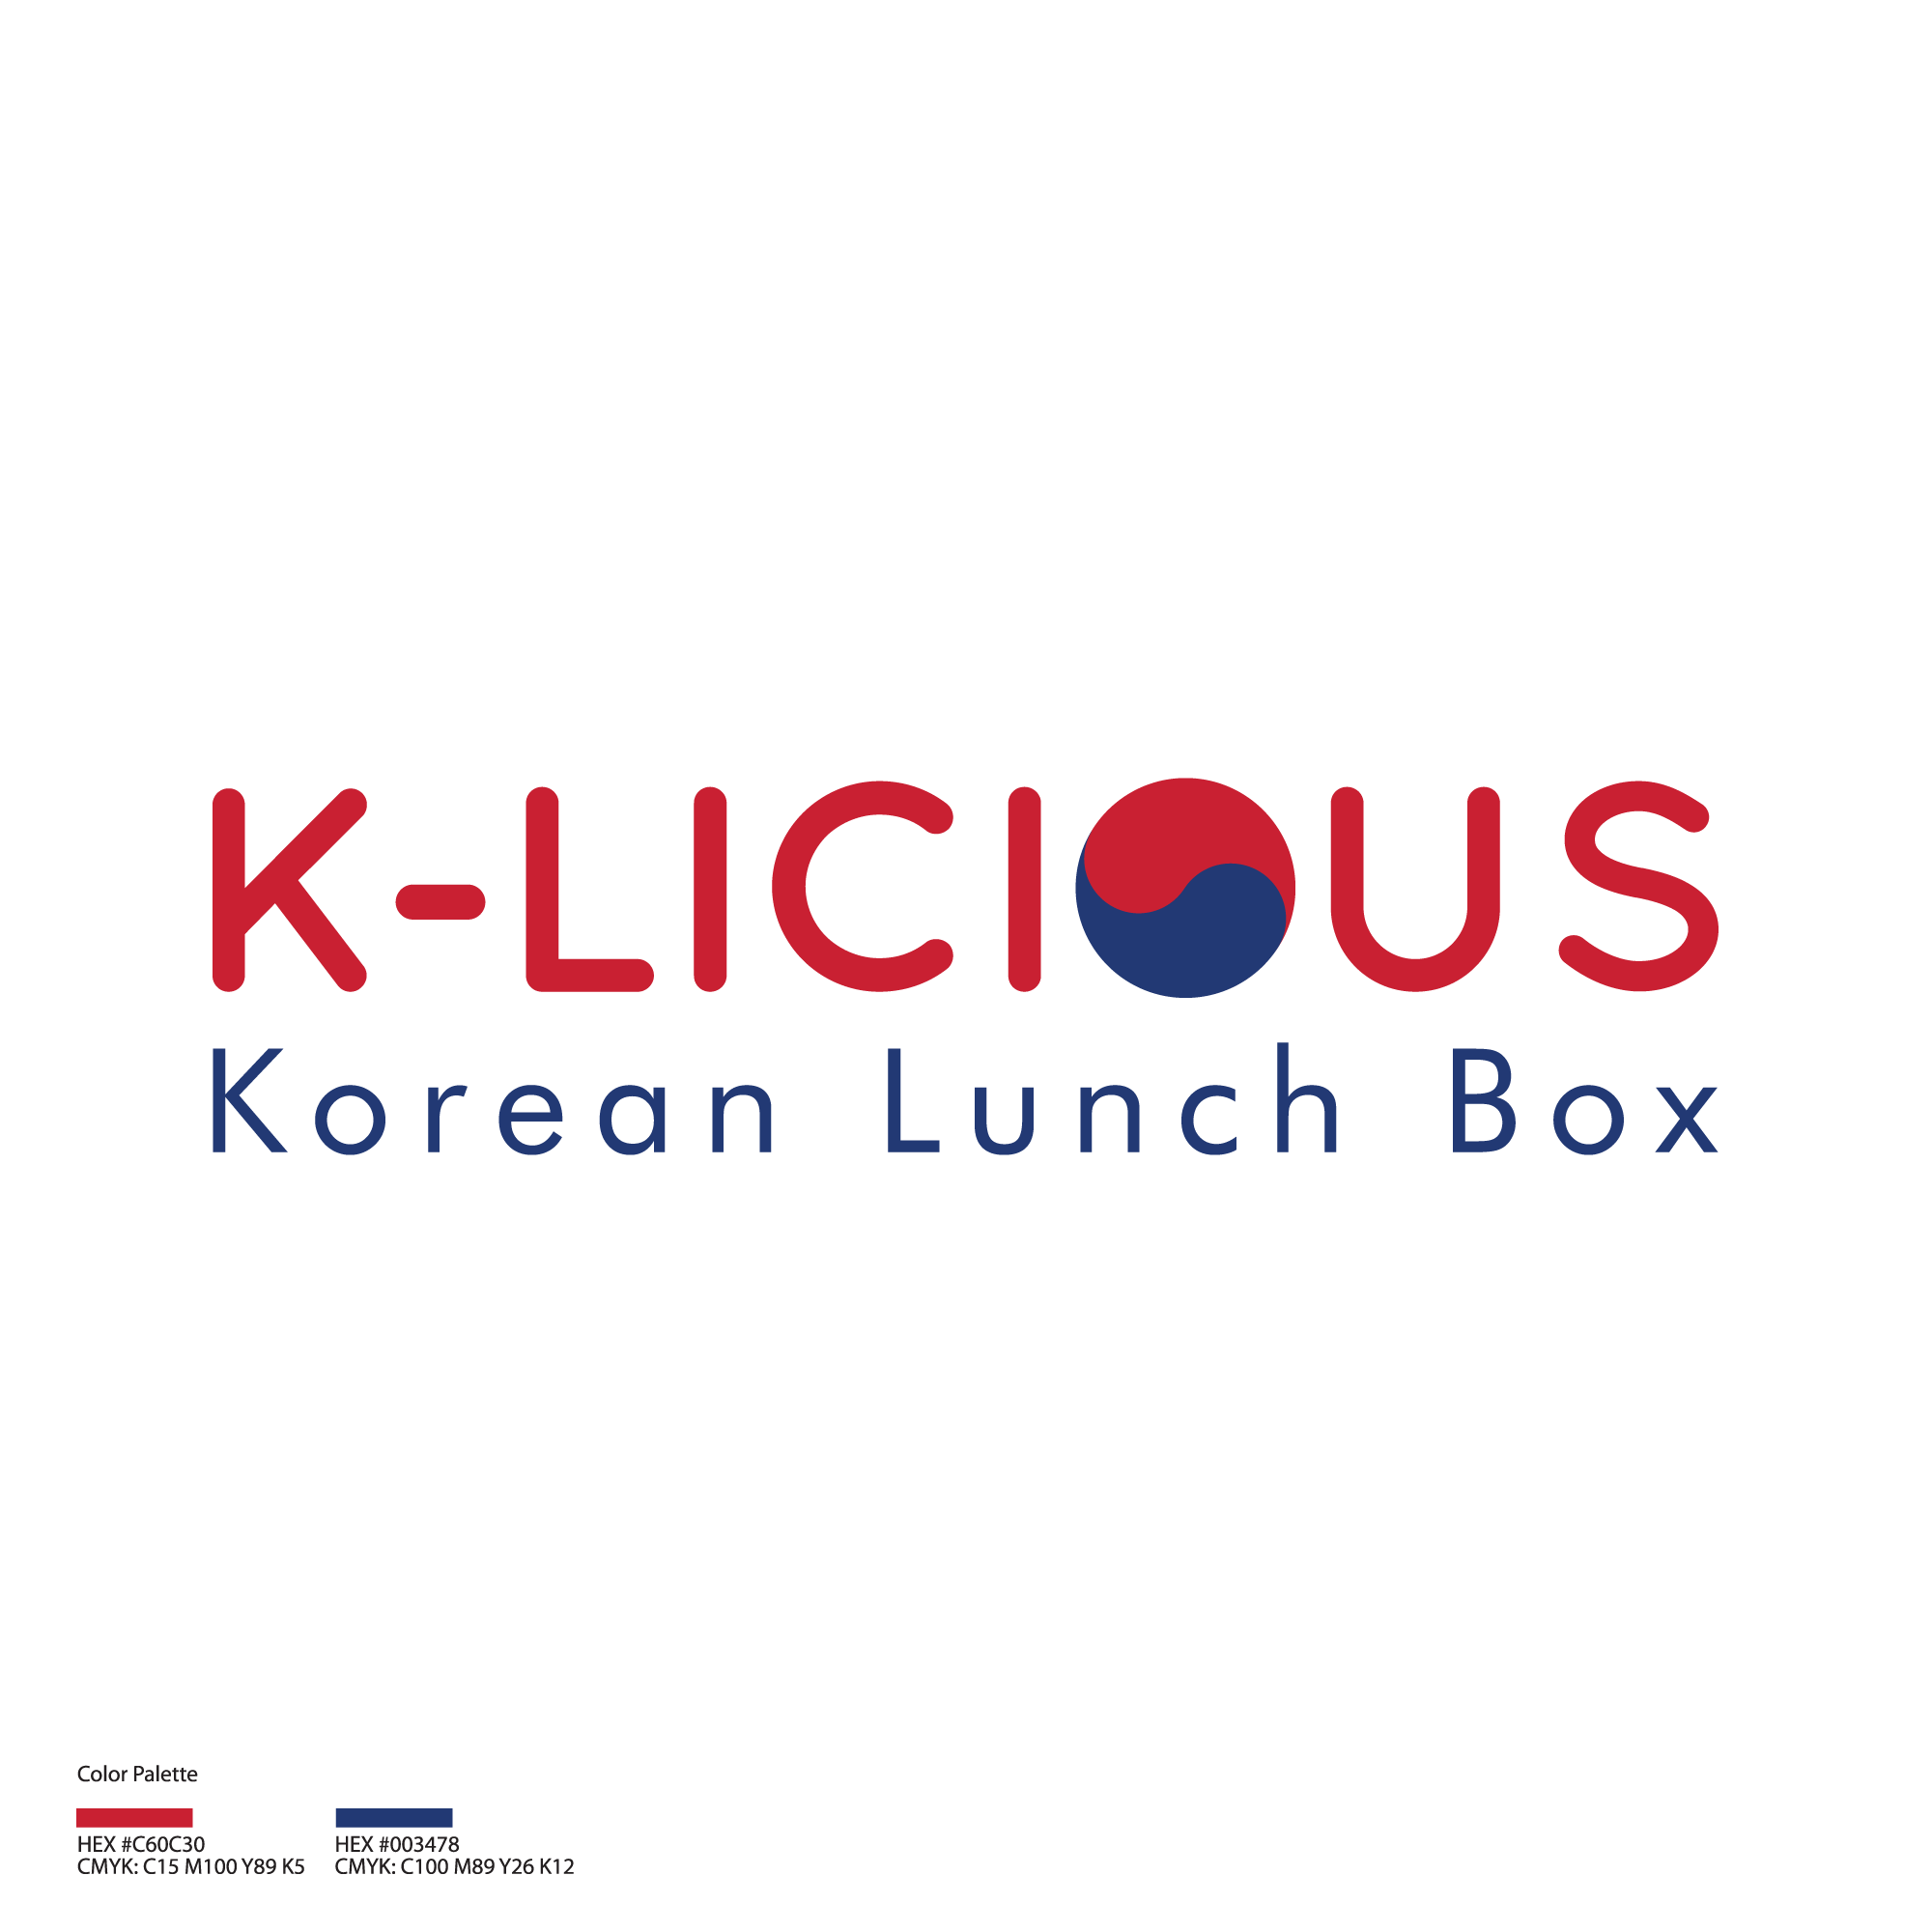 lunch Box for Korean restaurant need a powerful new logo